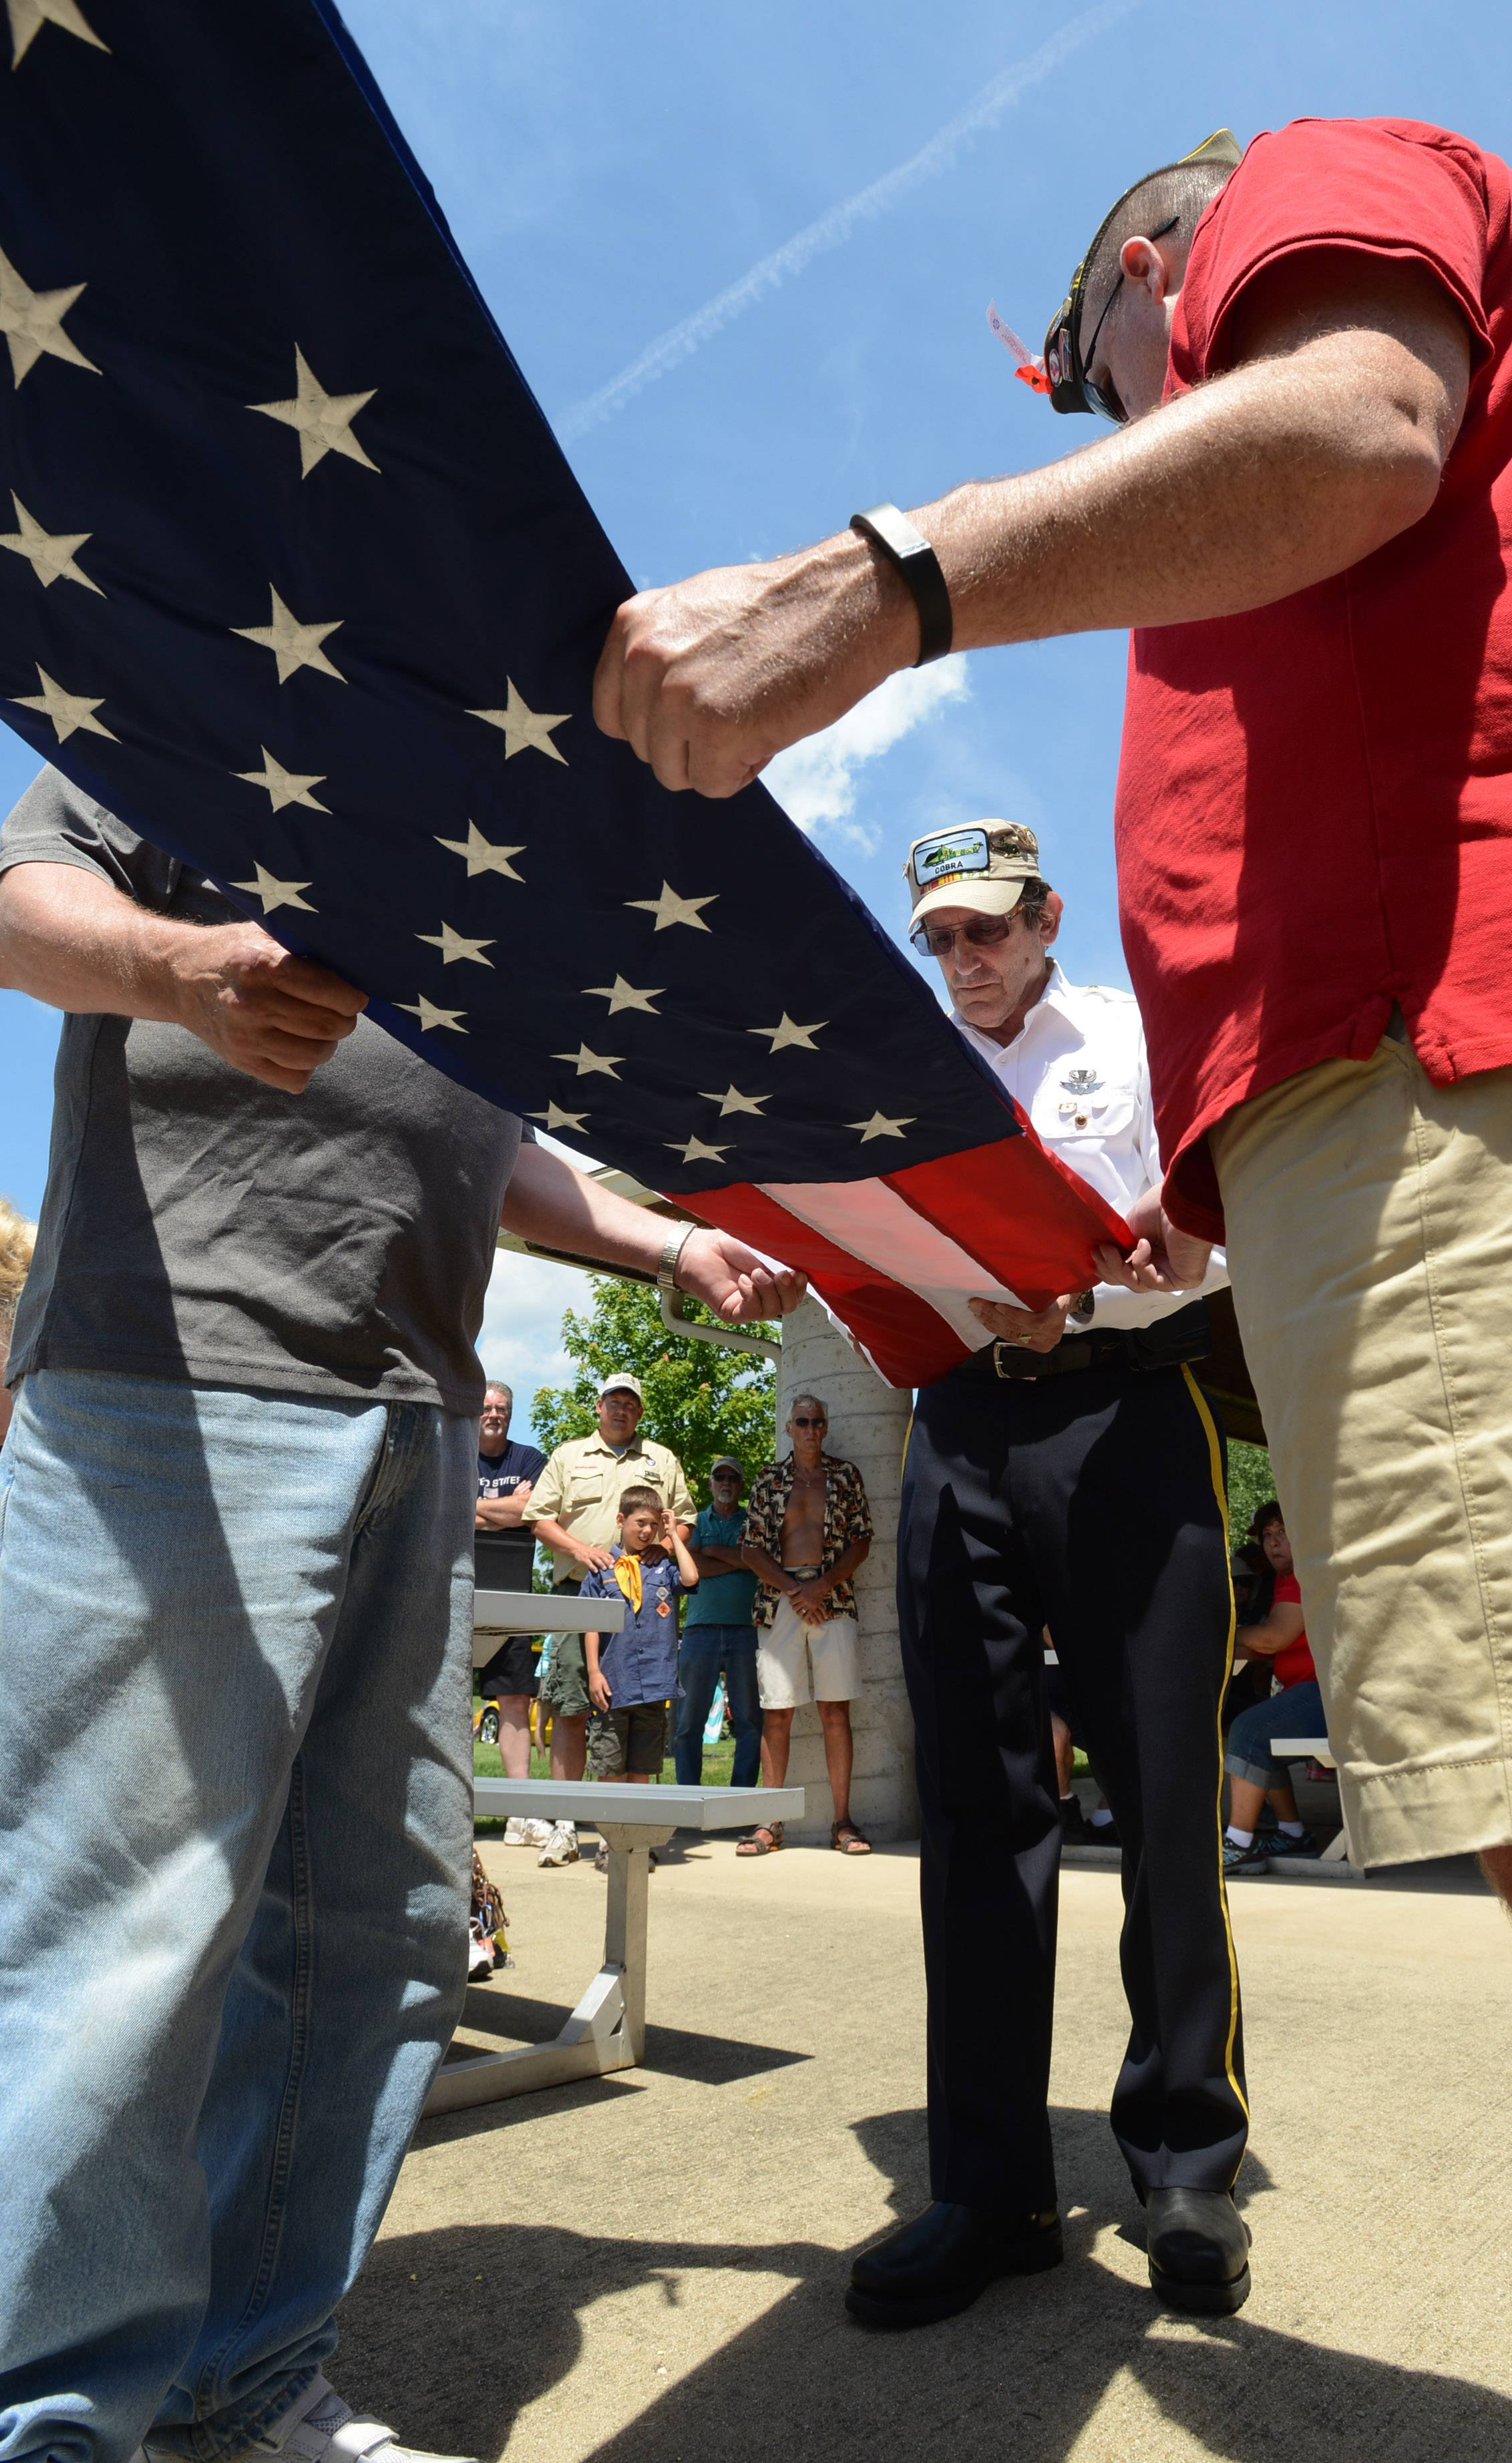 Wauconda's Barry Desfor is a member of the American Legion Post 911 and the VFW Post 2486 and participates in a flag folding demonstration during Island Lake's town picnic on the Fourth of July.